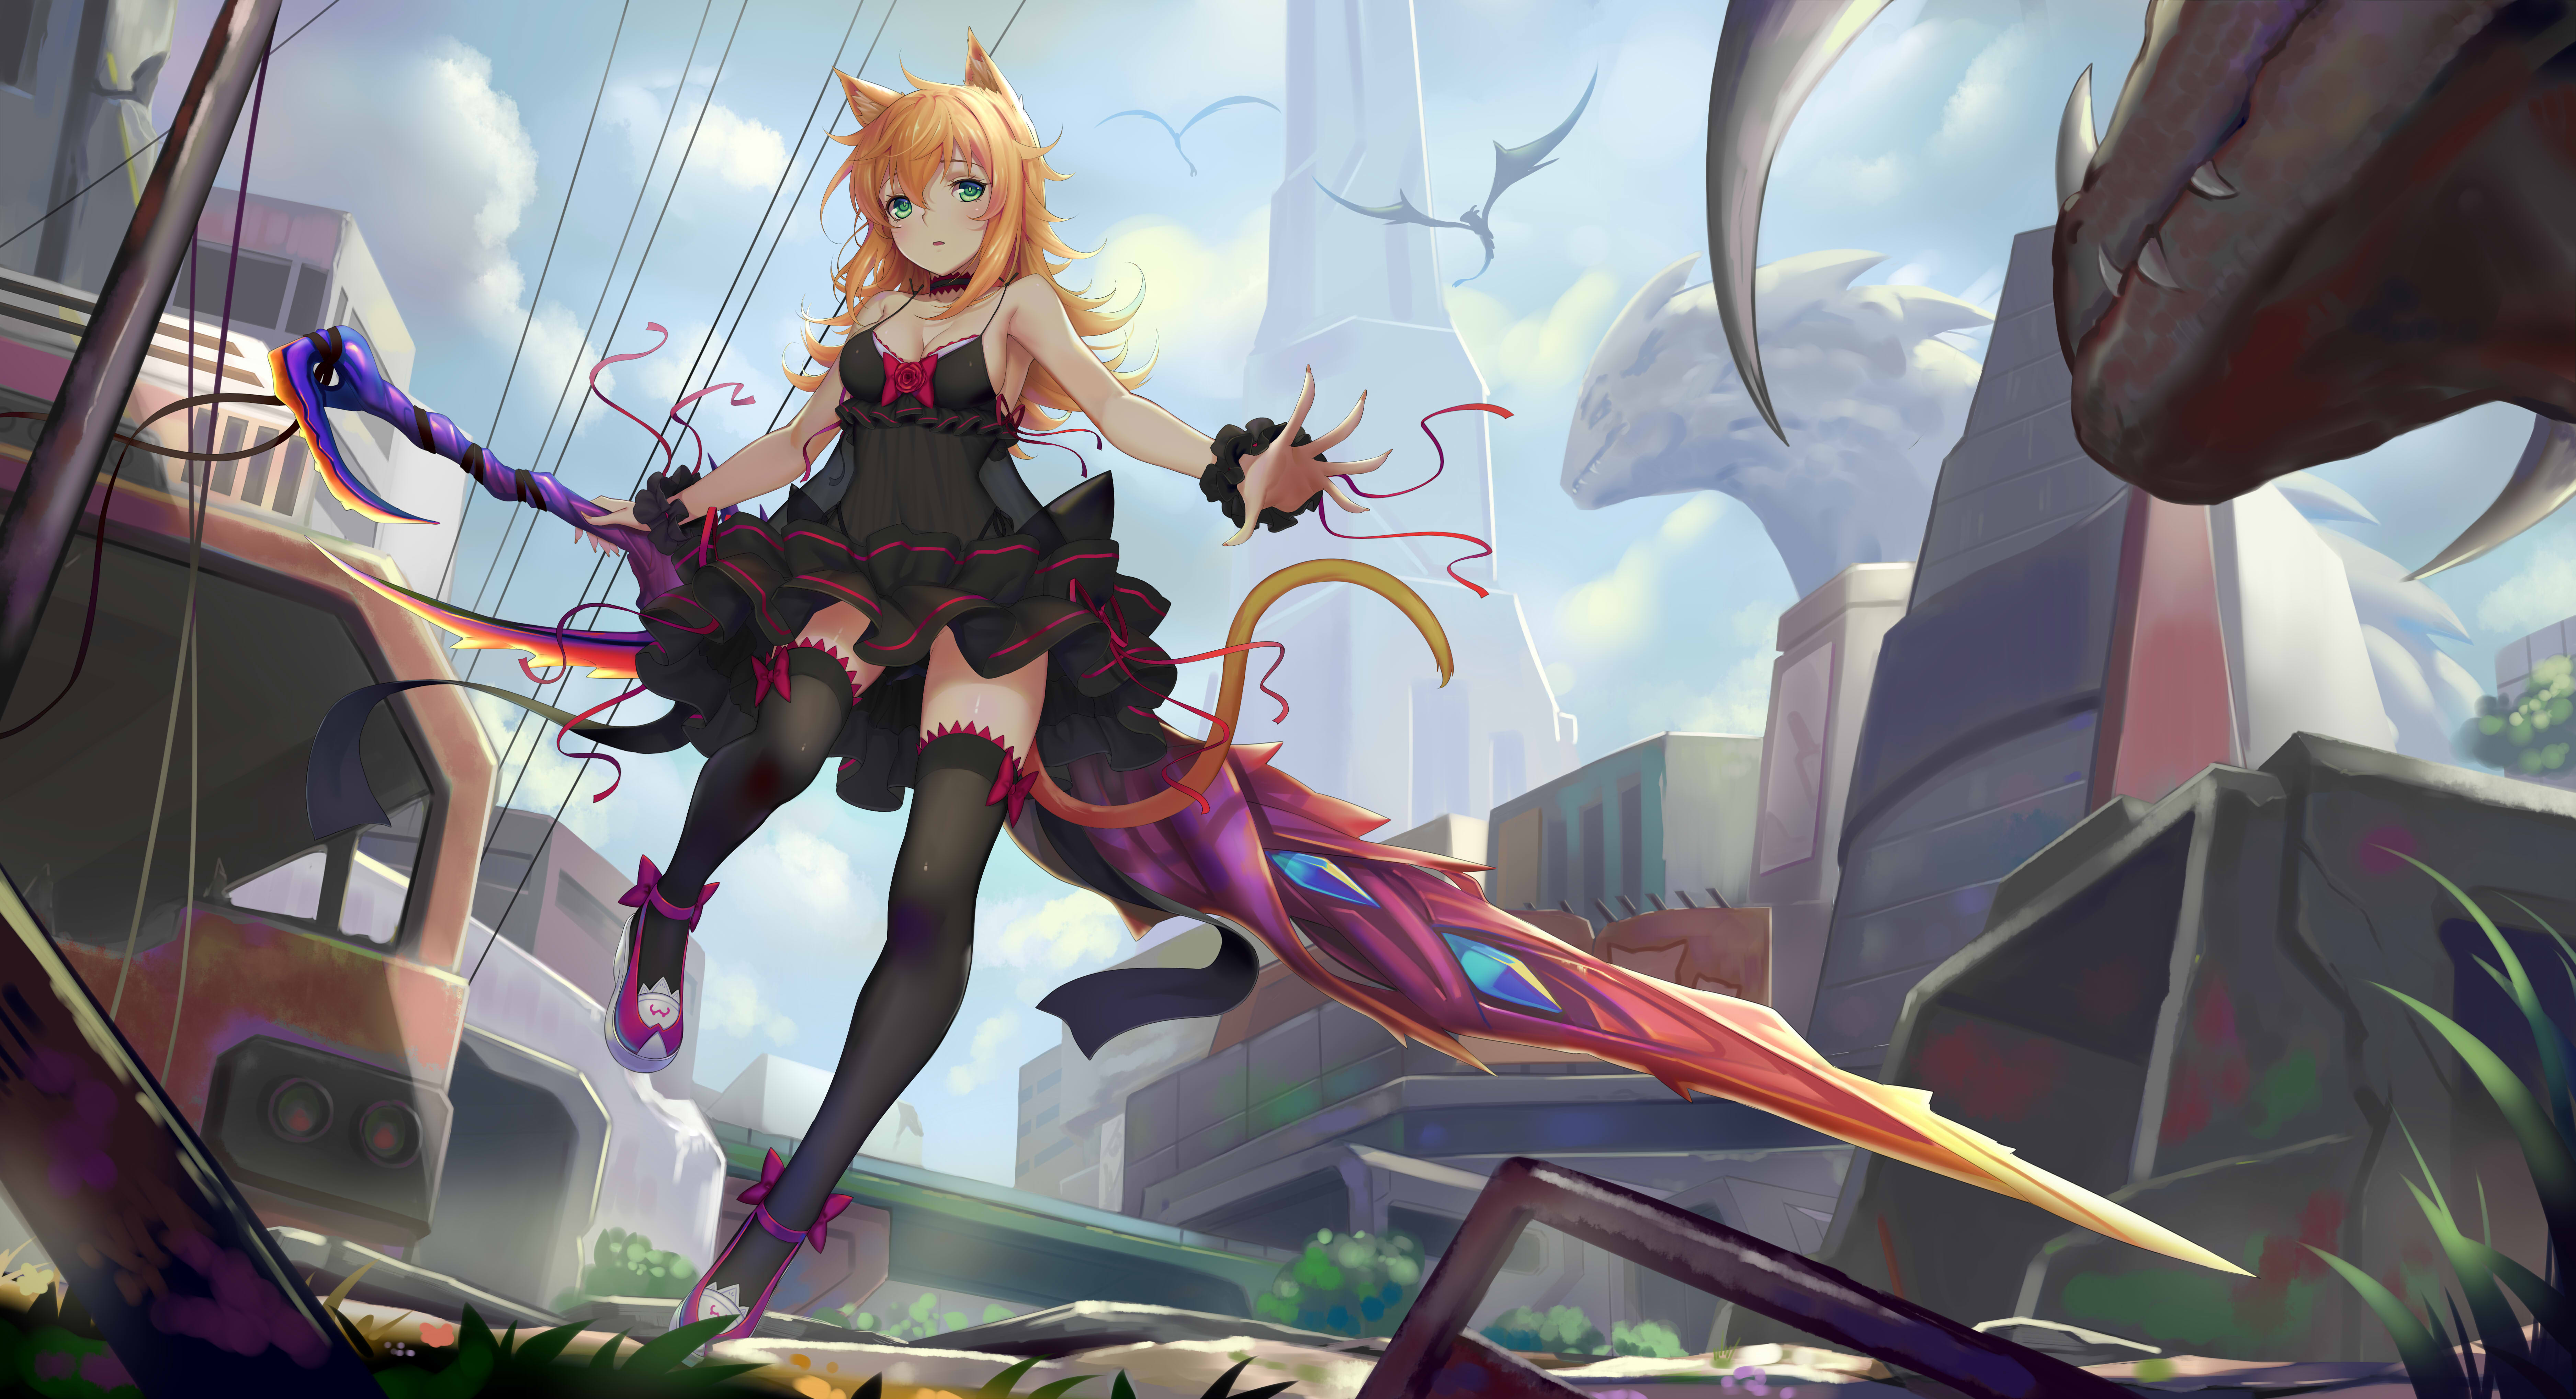 Anime Cat Girl With Sword - HD Wallpaper